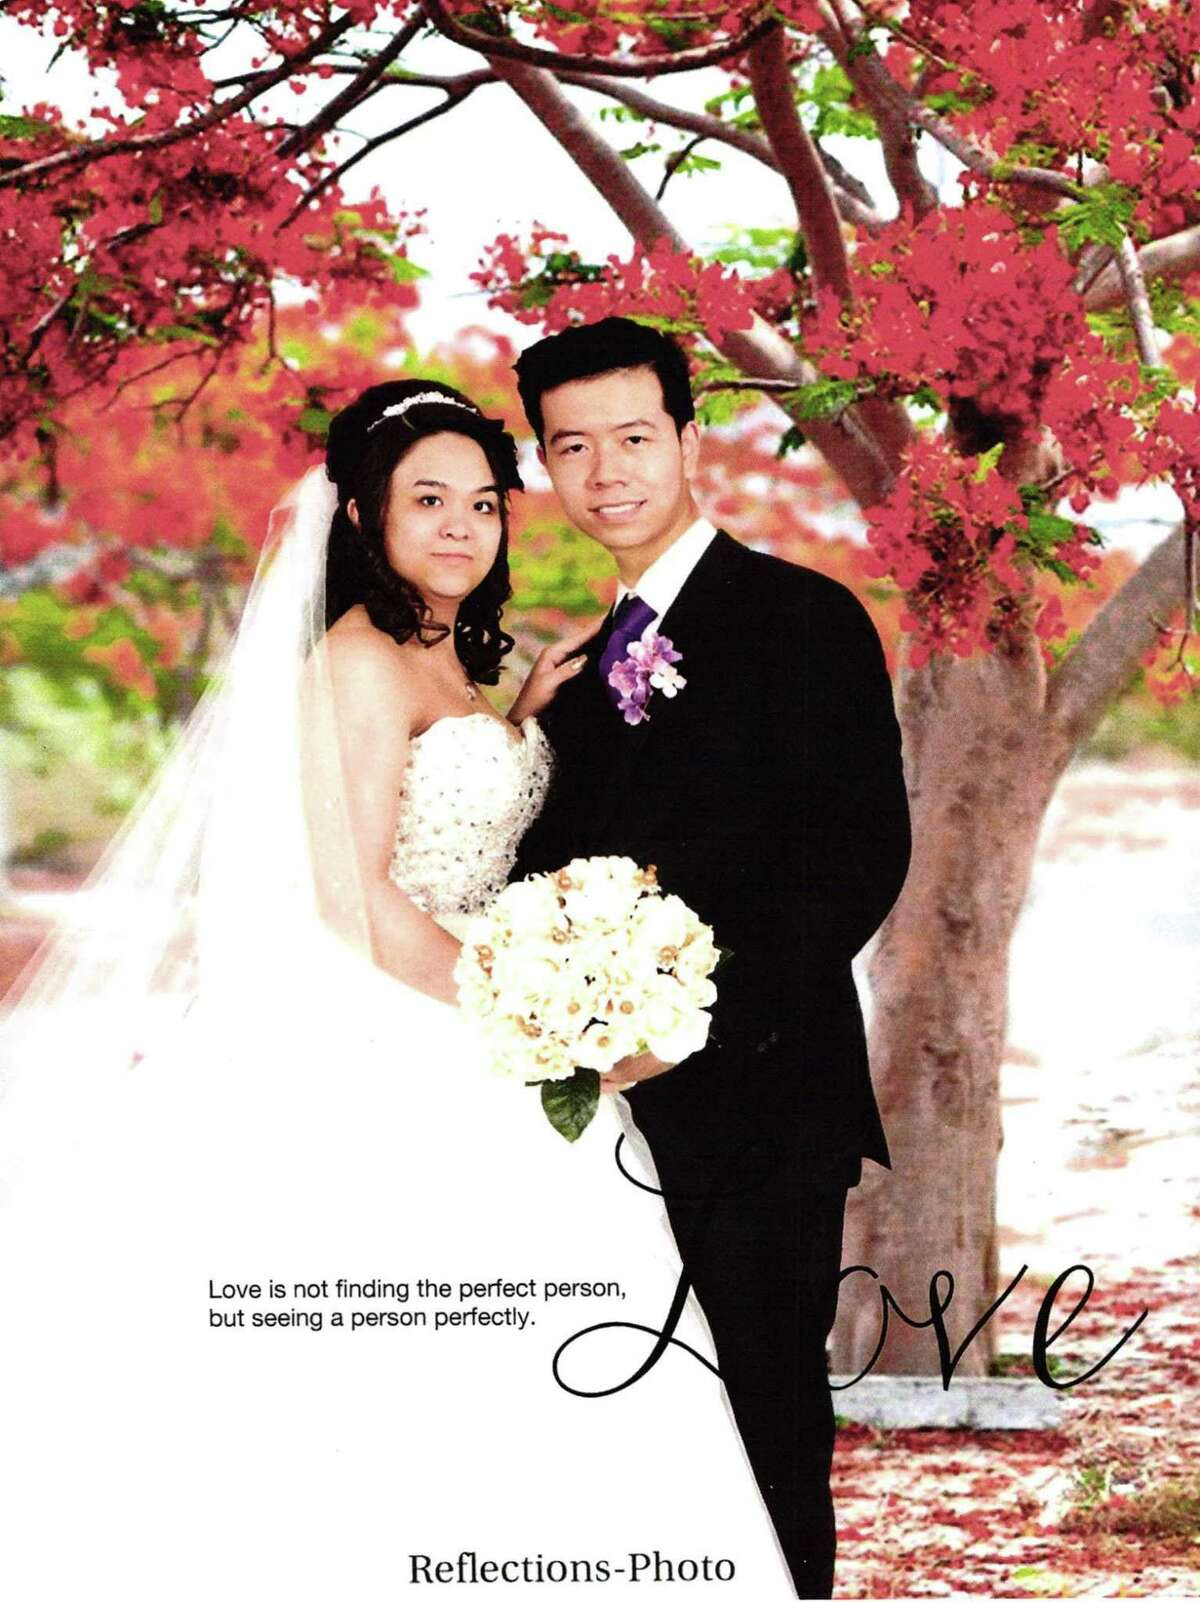 Photo from a wedding album of Khanh Phuong Nguyen and Tam Cong Le. Photo albums were submitted as evidence by federal prosecutors in a massive marriage fraud case.